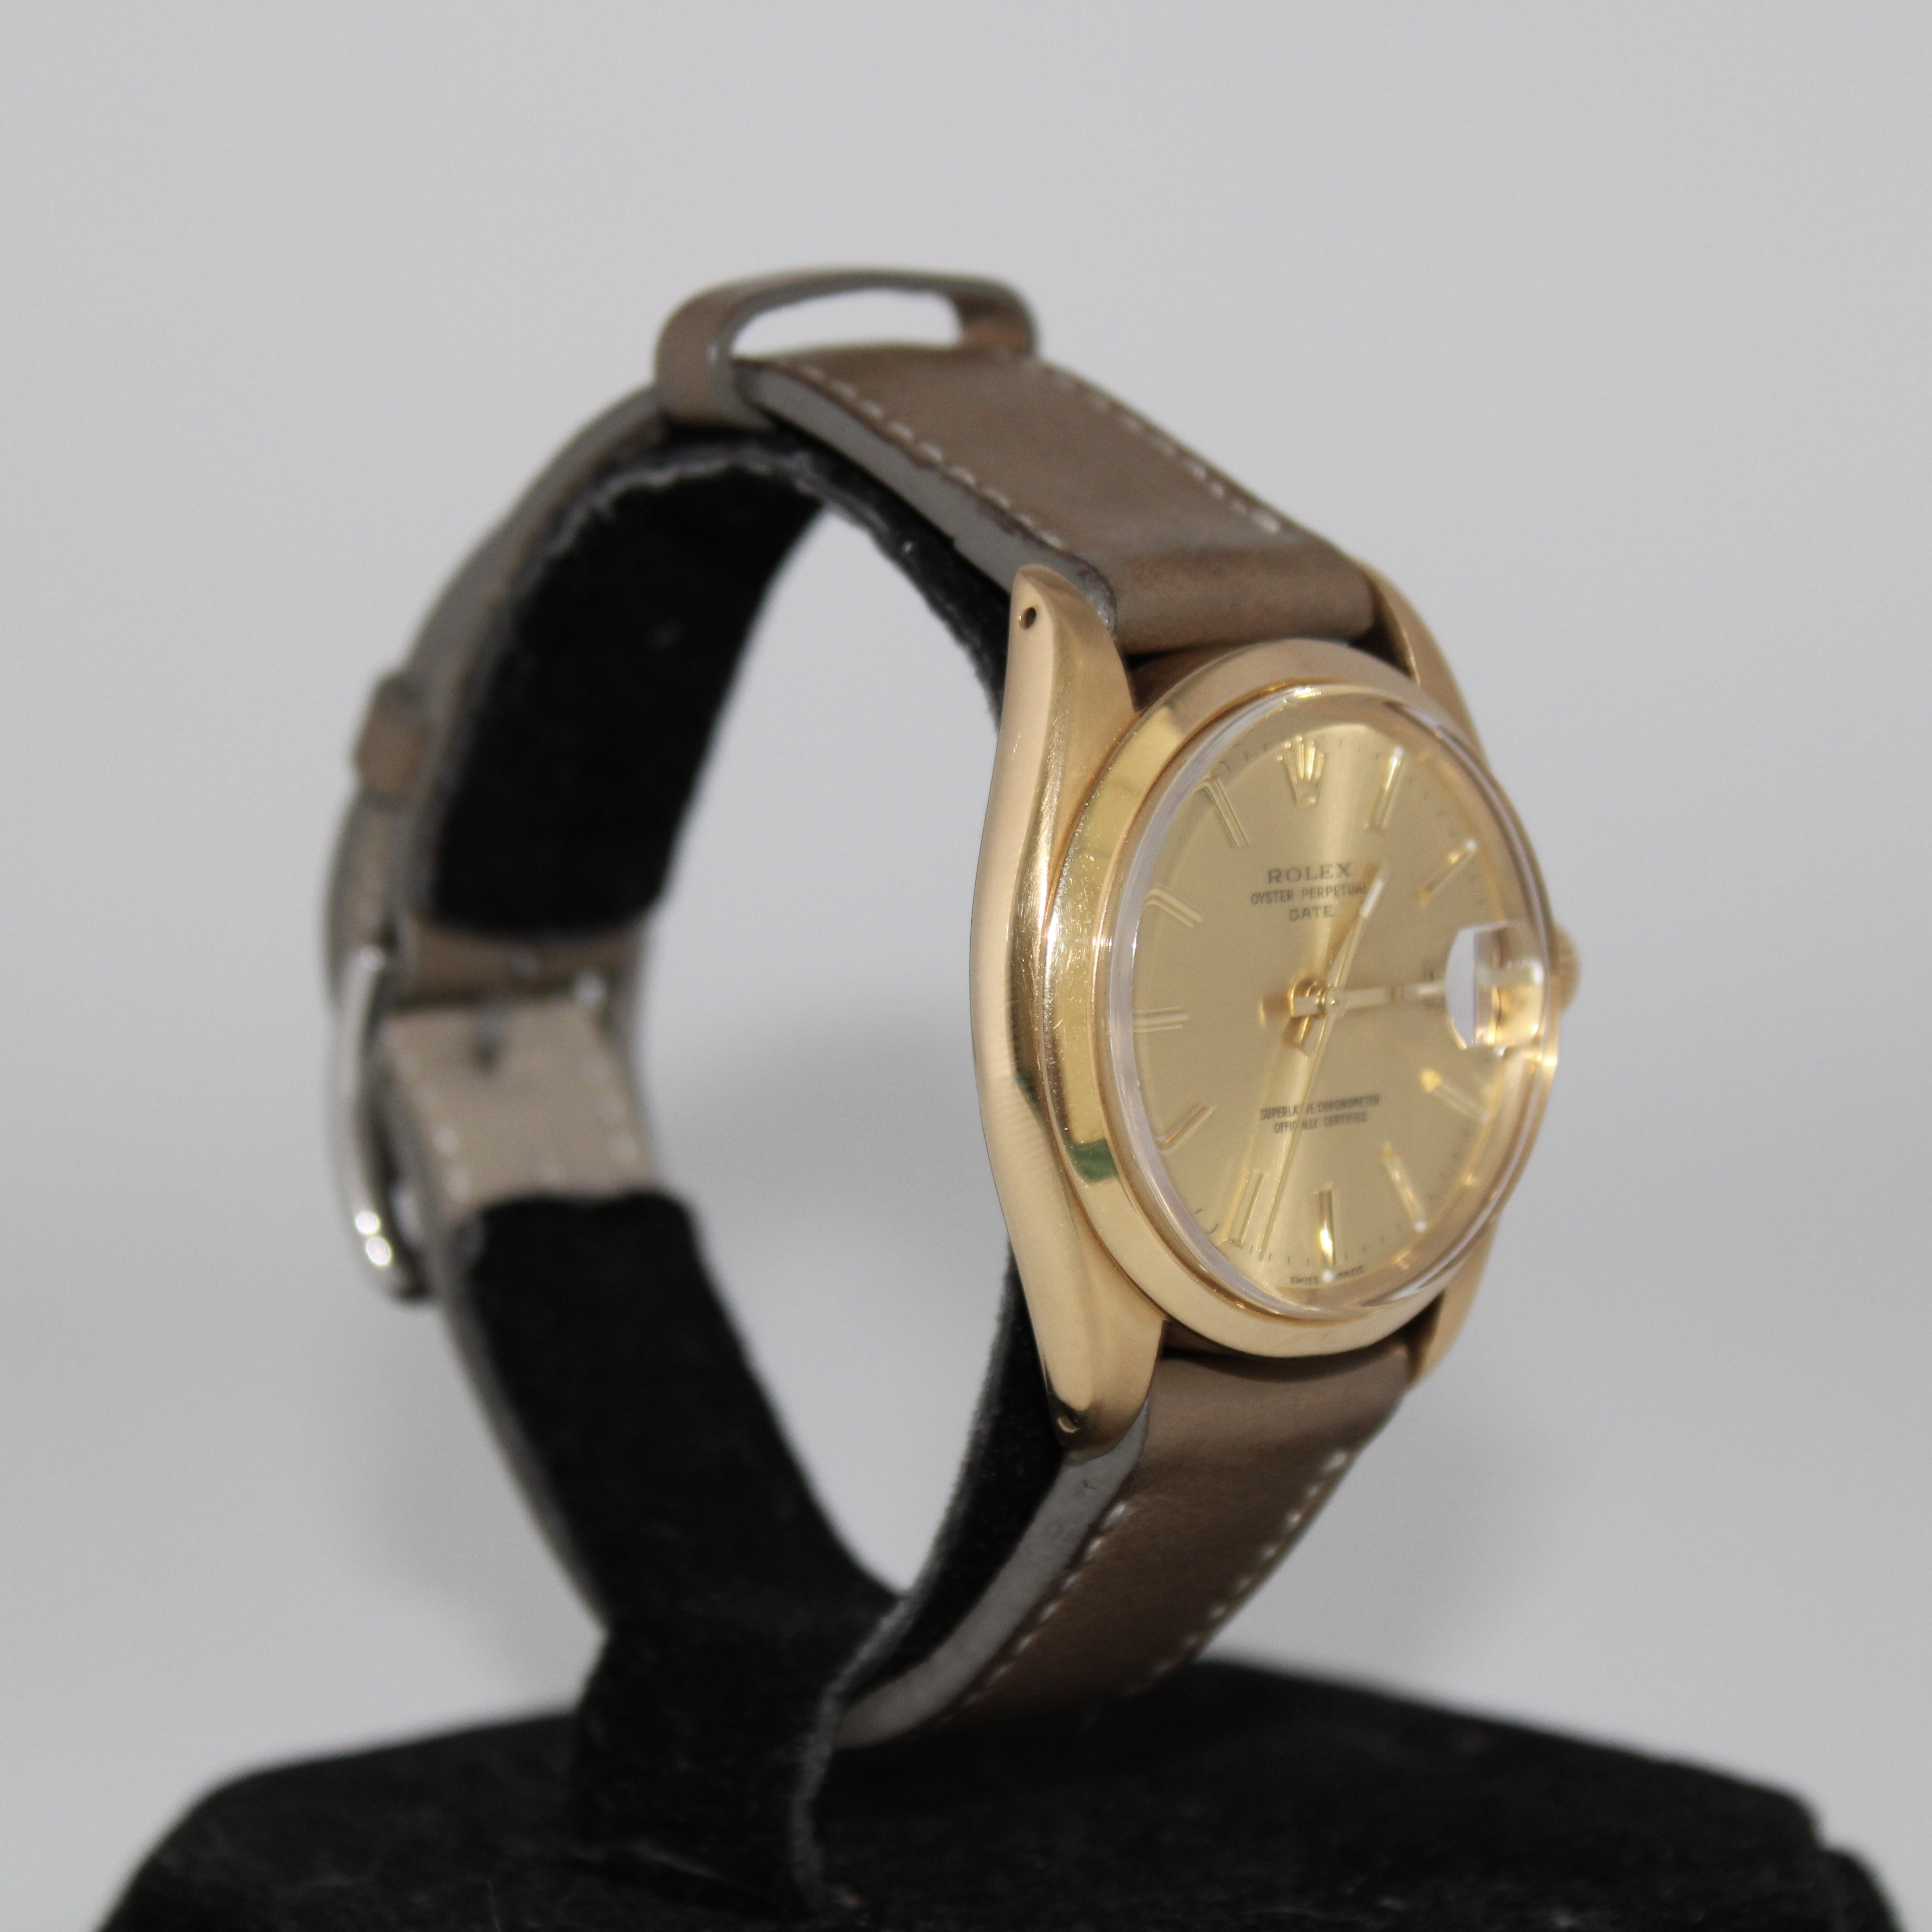 Rolex Oyster Date 18ct Ref 1500 - Image 5 of 6